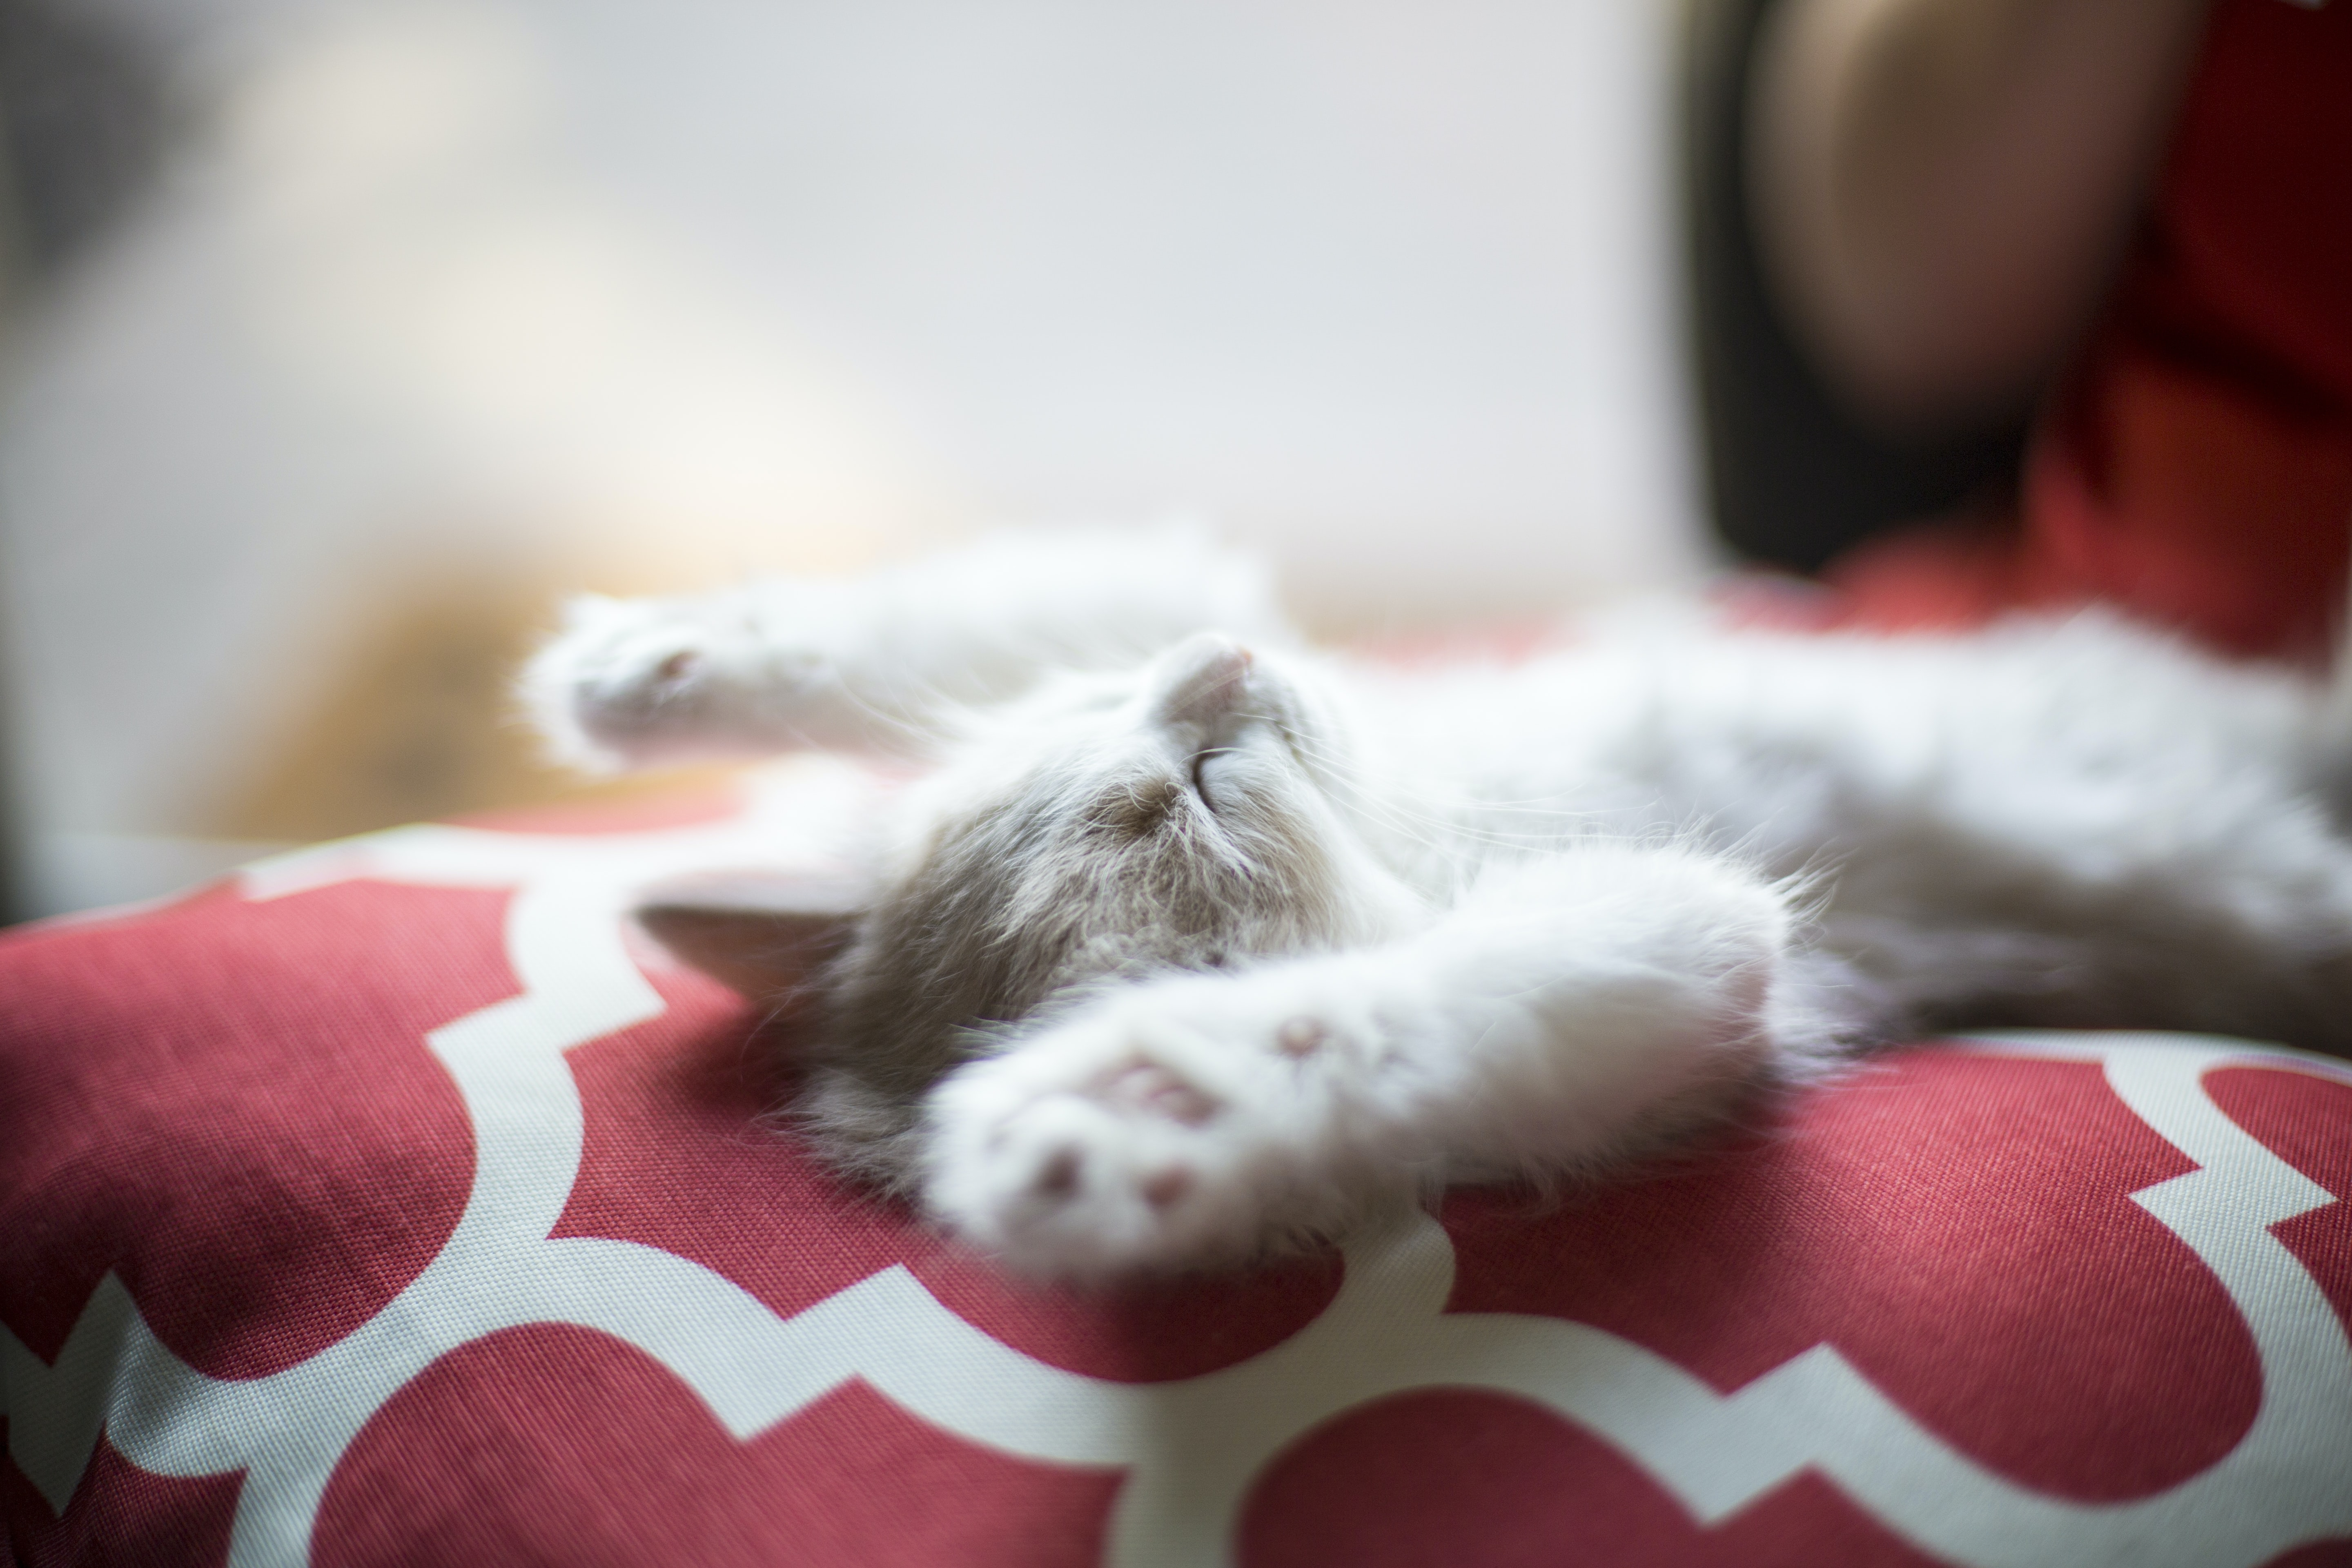 kitten lying on red and white quatrefoil textile